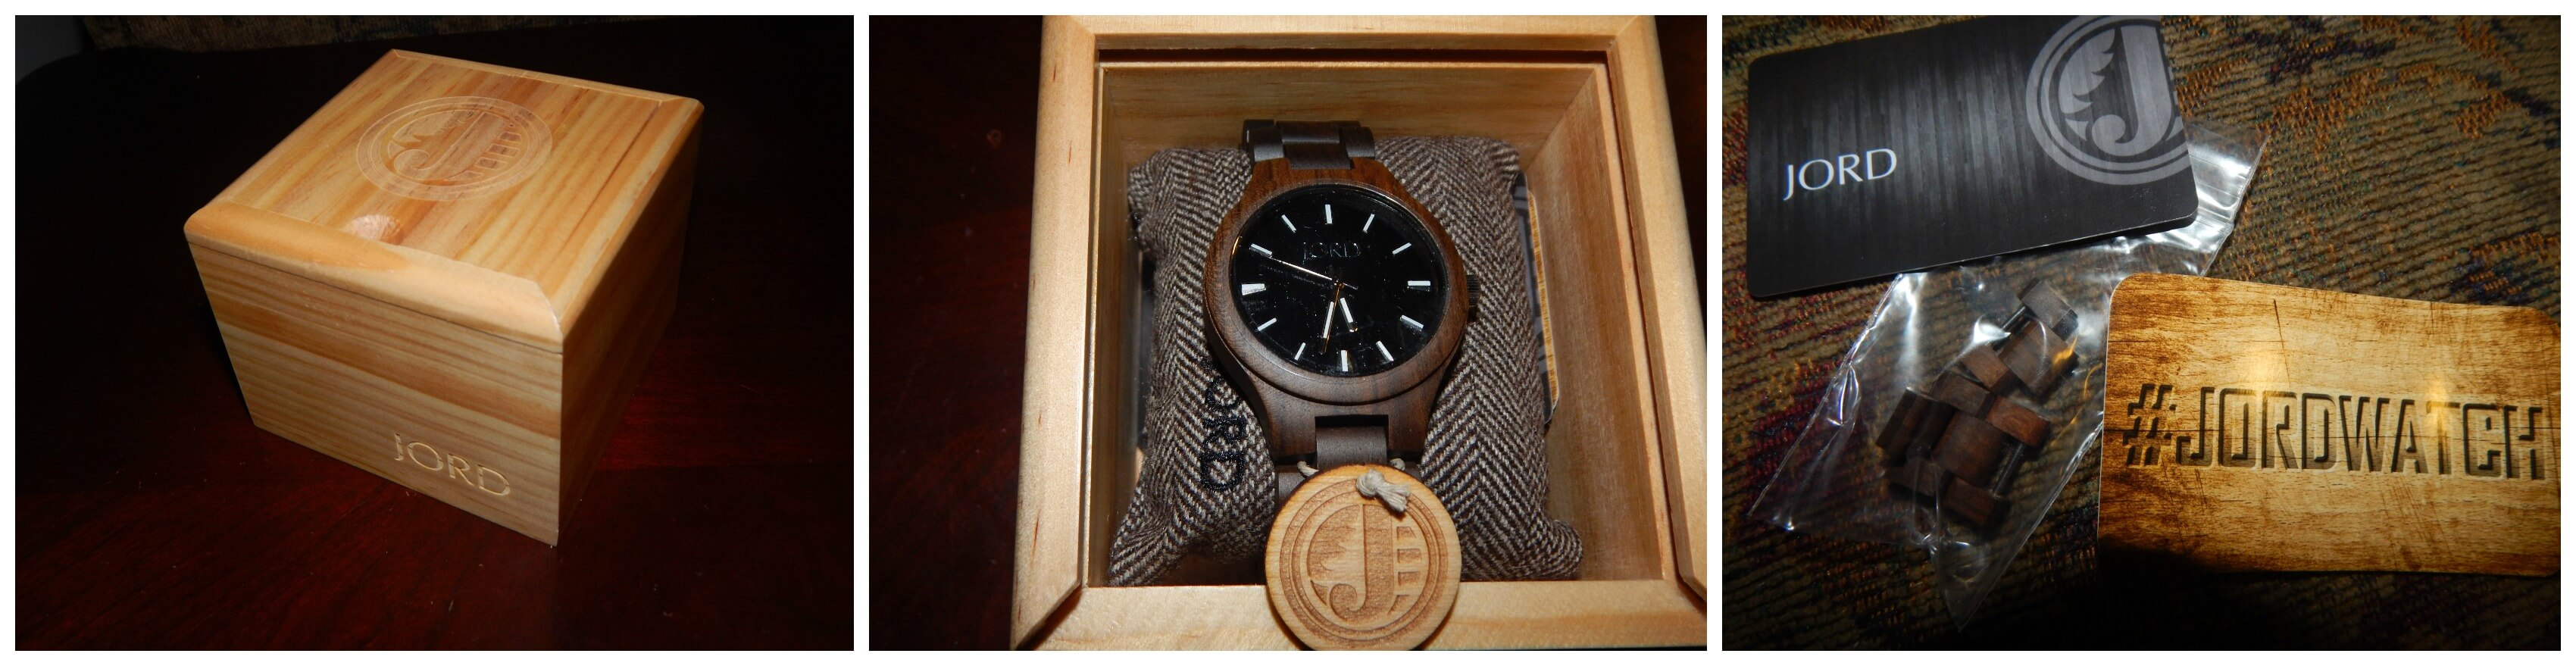 Enter to win your own JORD wood watch. Giveaway ends 3/25/15